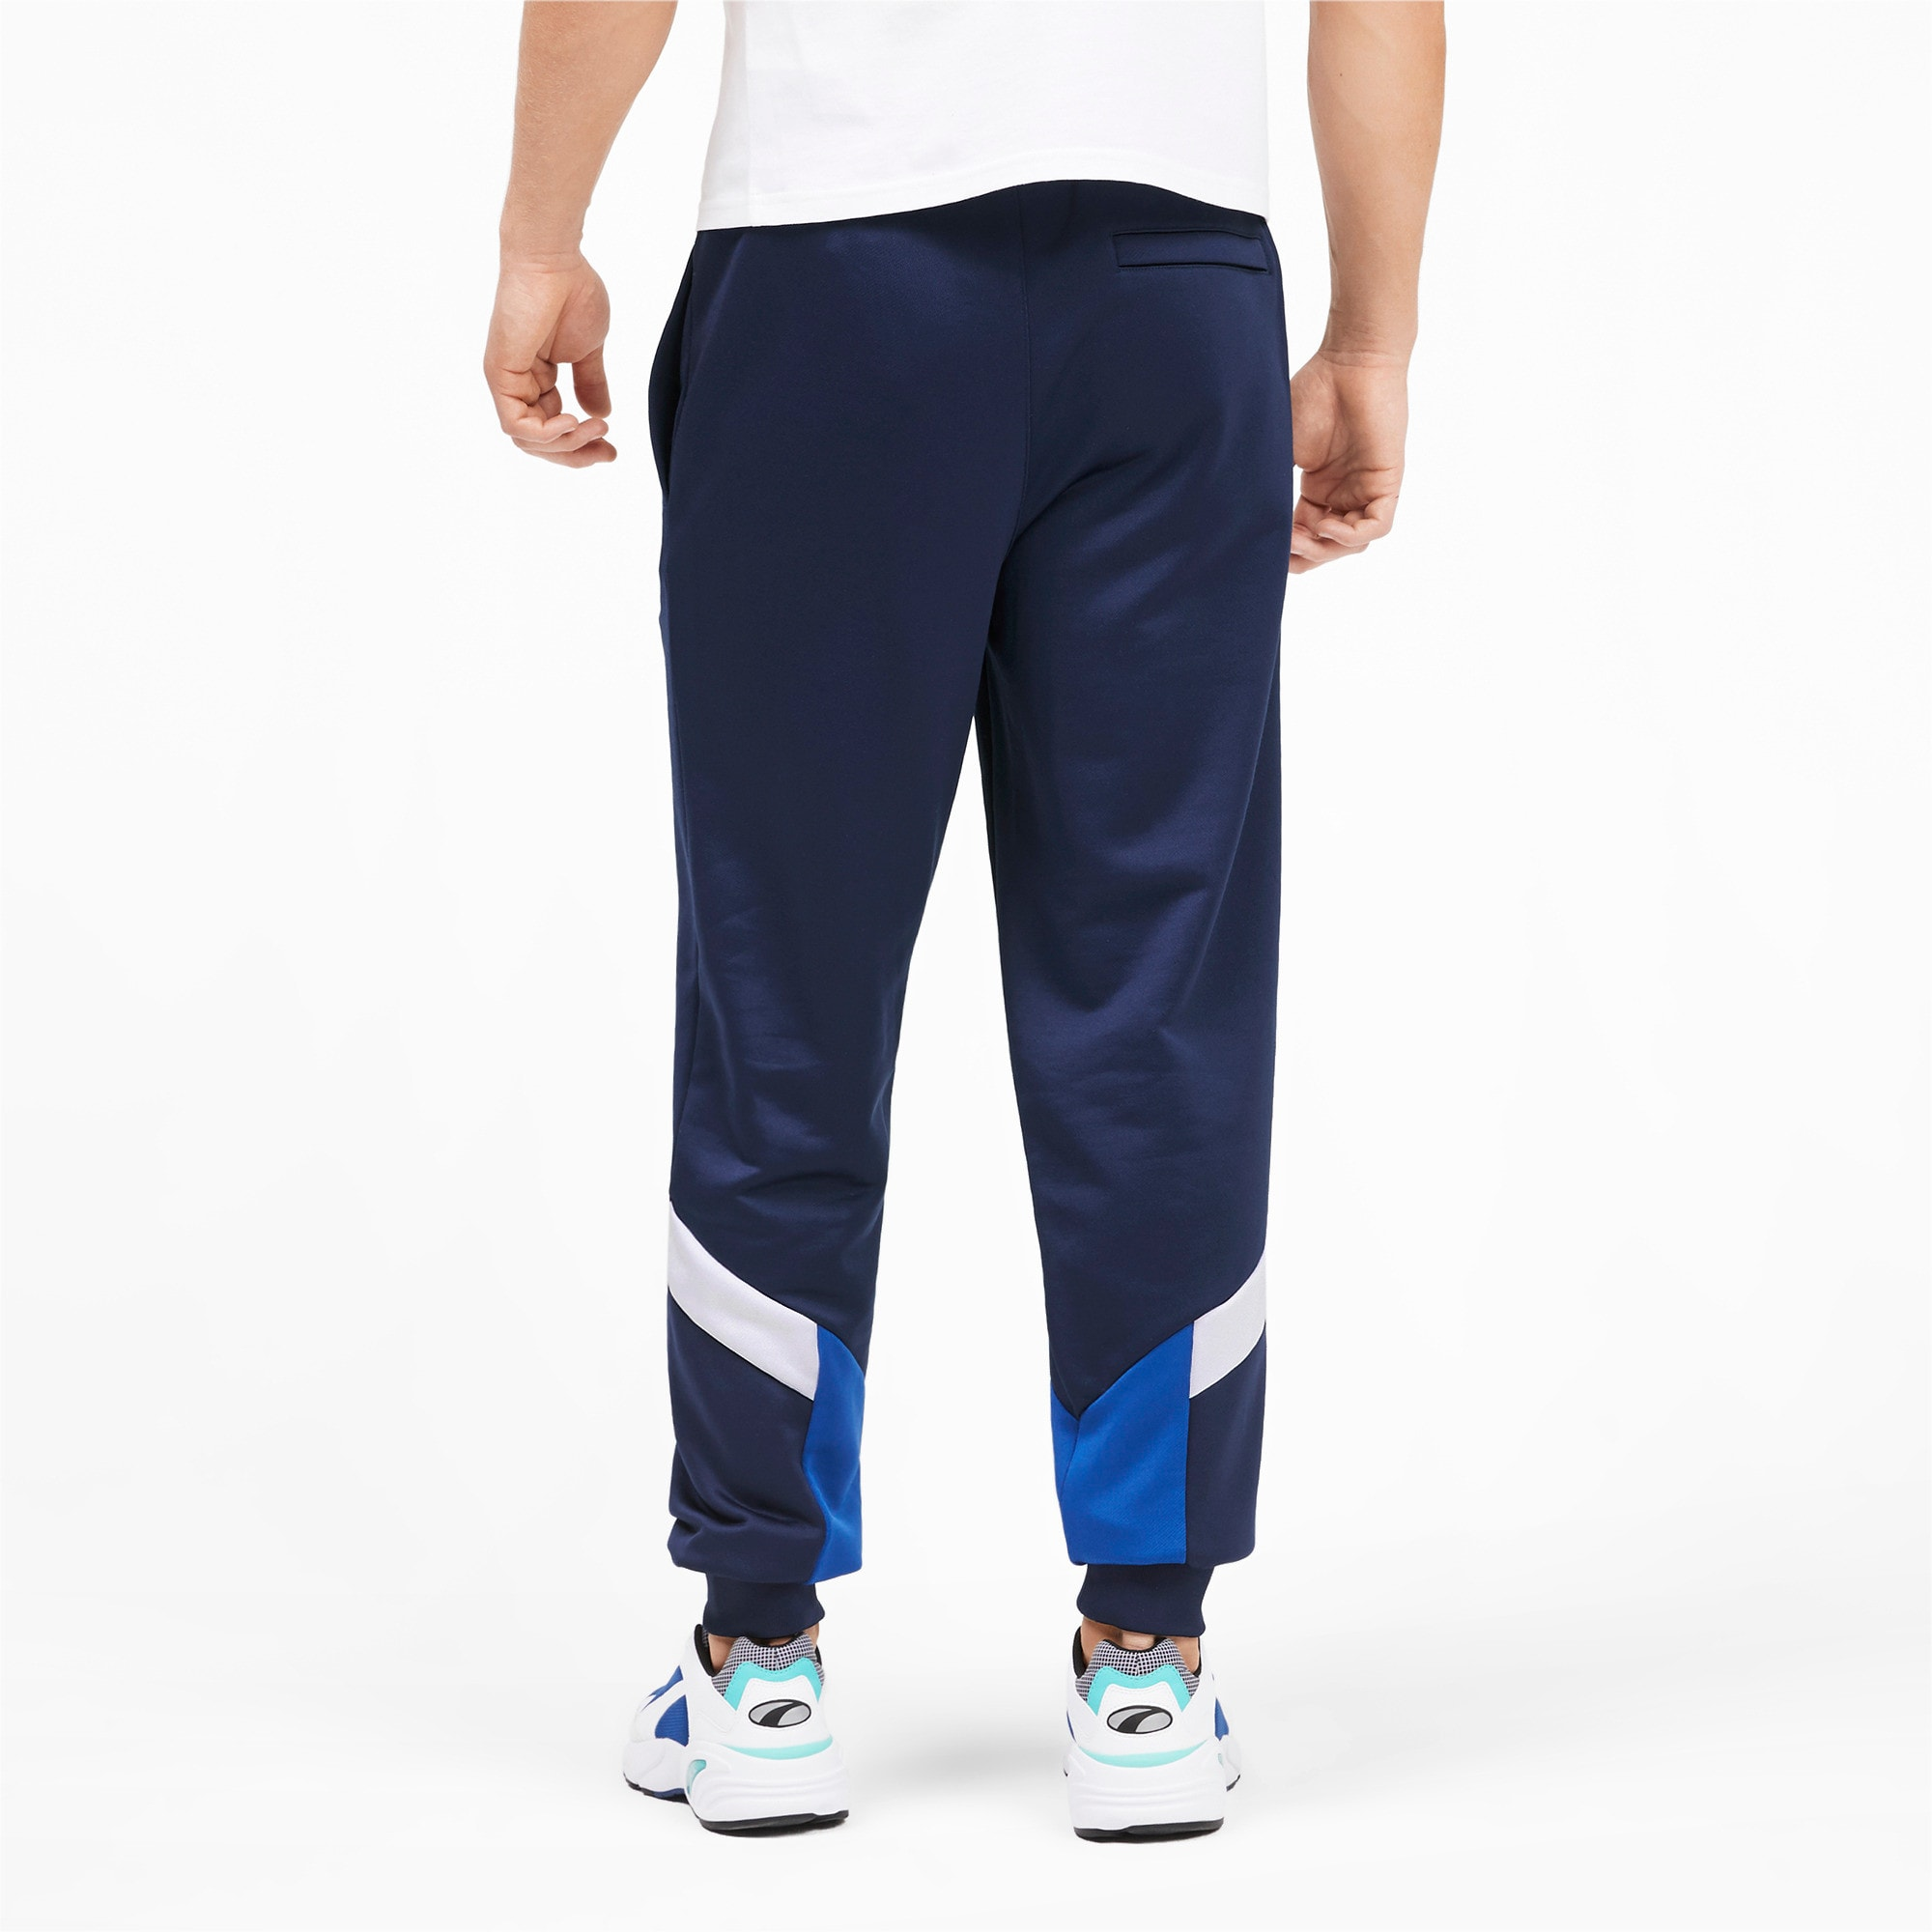 Thumbnail 3 of Iconic MCS Men's Track Pants, Peacoat, medium